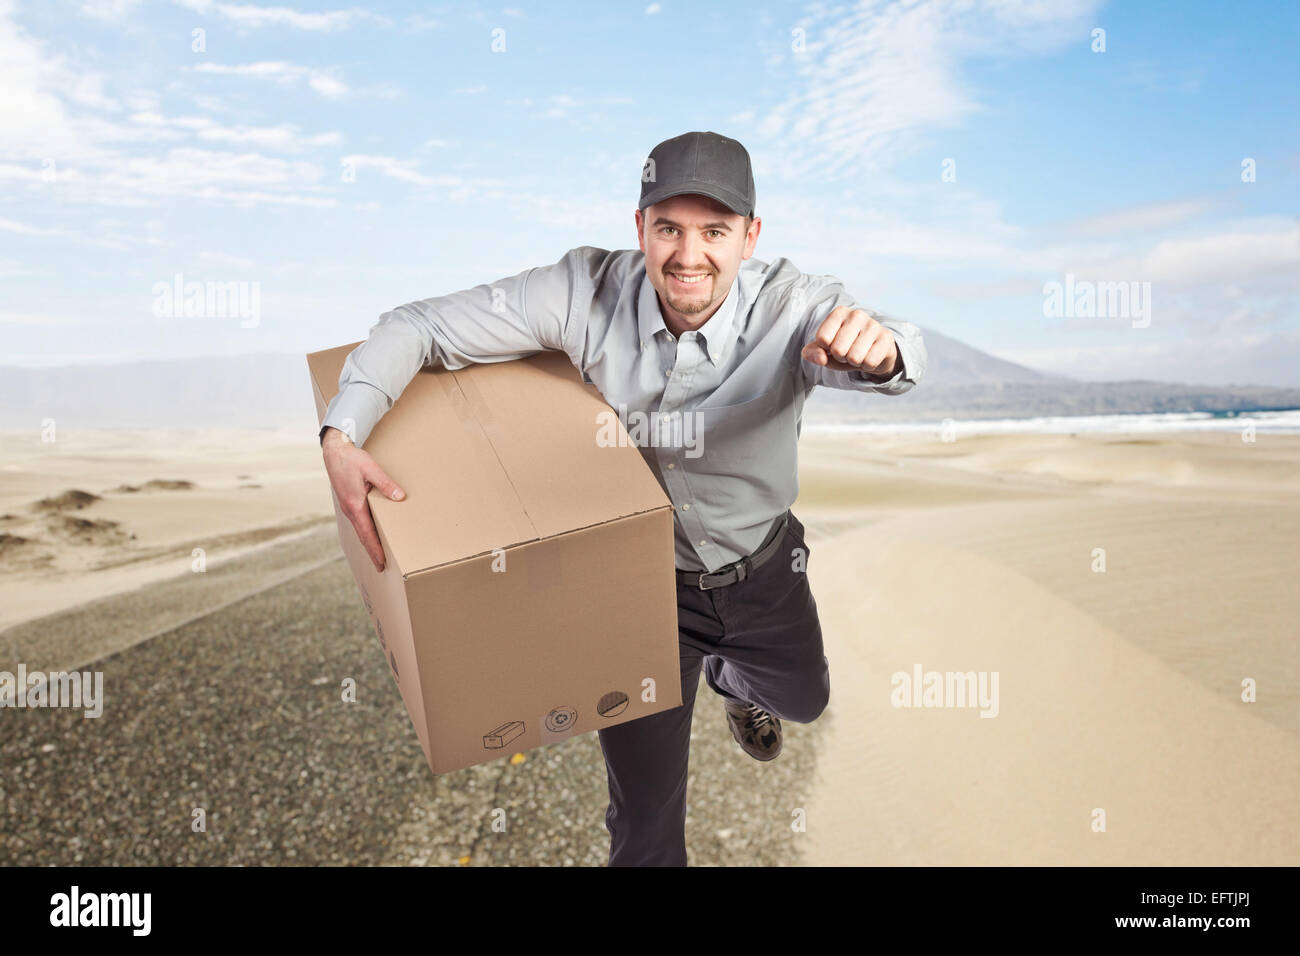 smiling delivery man and desert background stock photo 78602906 alamy